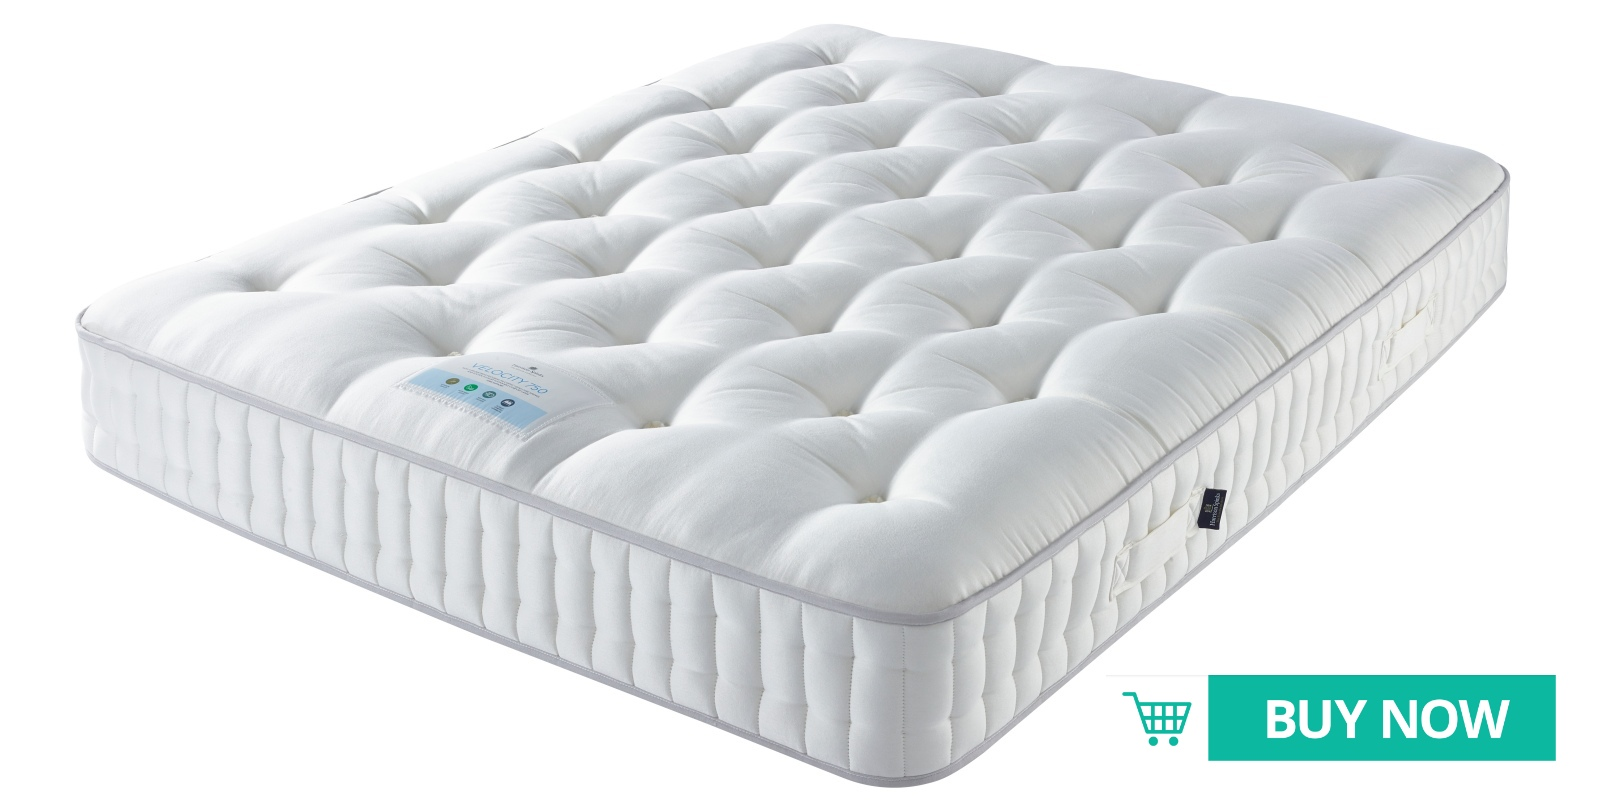 Velocity 3250 Mattress From Harrison Spinks Buy Now